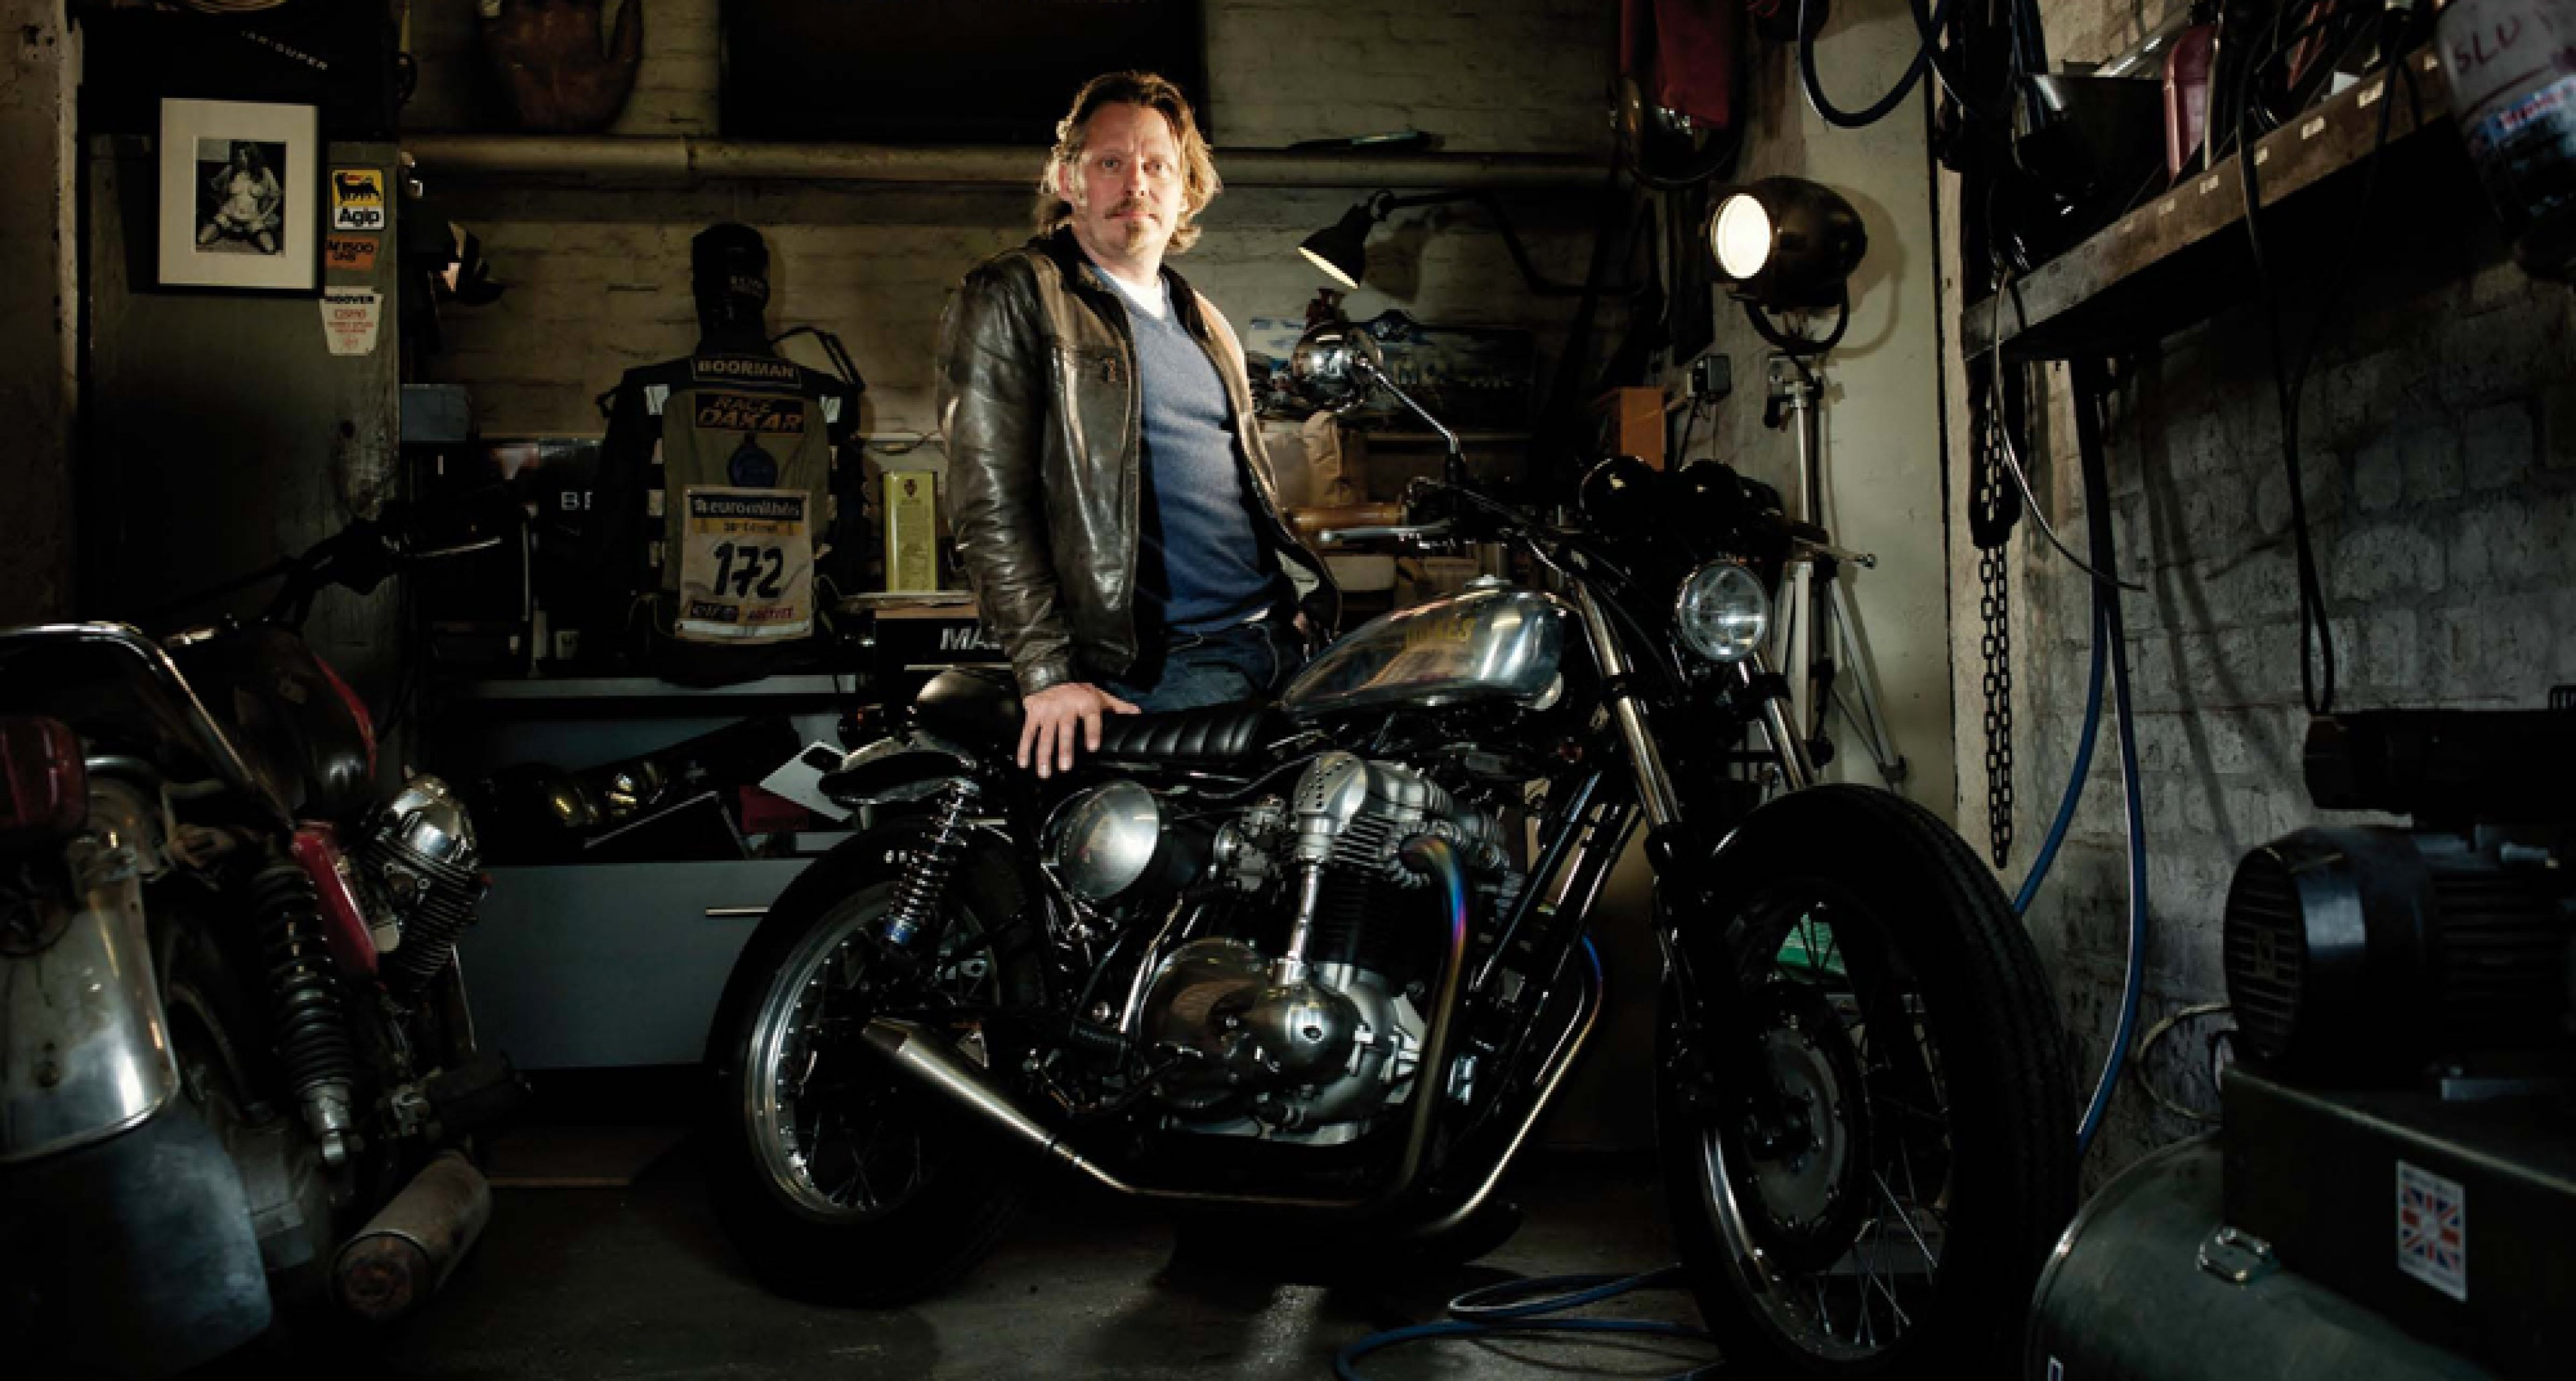 British actor and motorcycle enthusiast Charley Boorman. Photo by Sam Christmas.